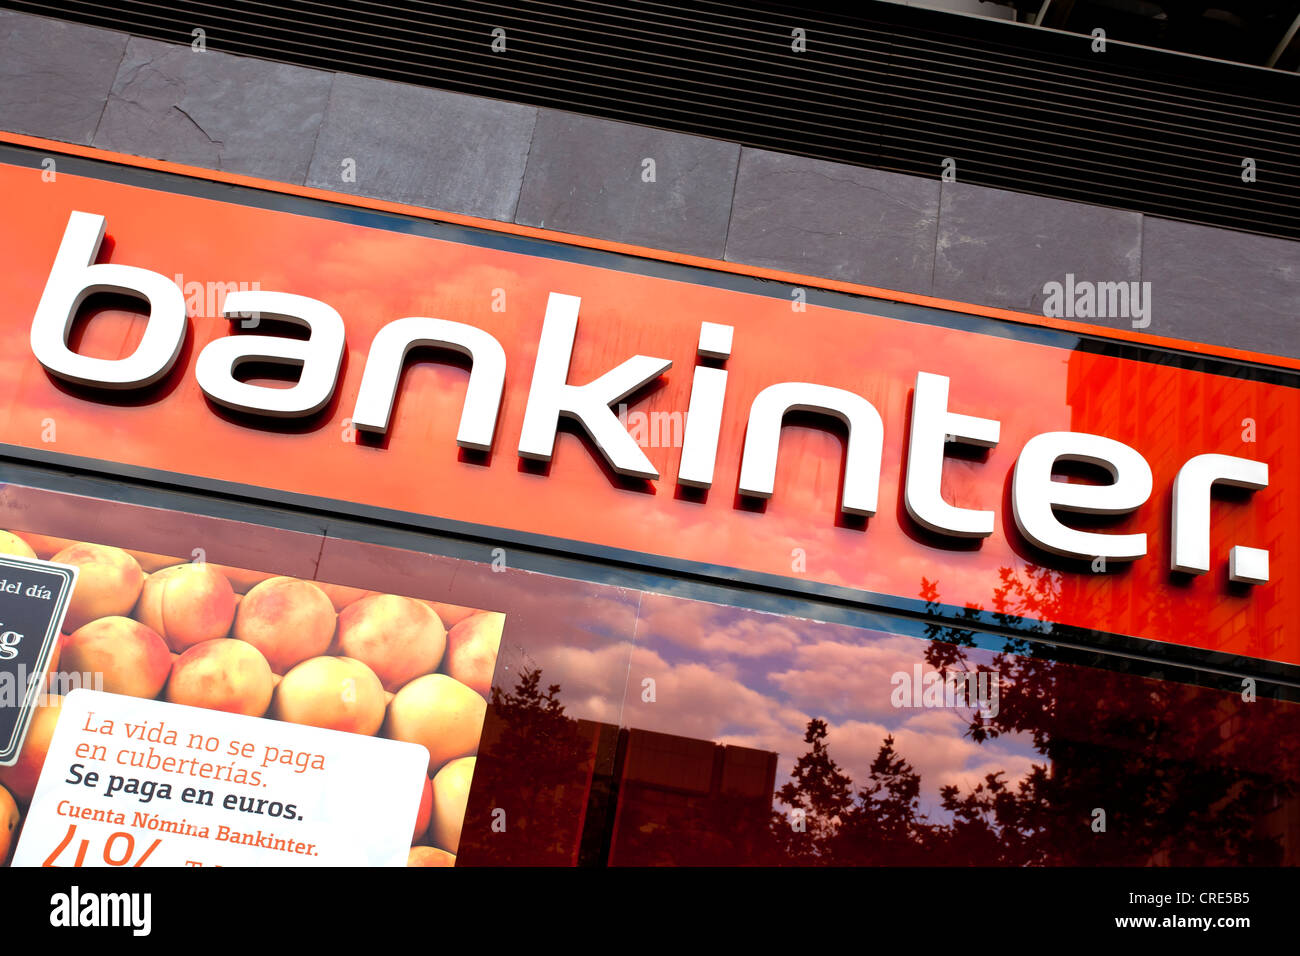 Logotype of the Spanish bank Bankinter, Banco Intercontinental Espanol, Madrid, Spain, Europe - Stock Image